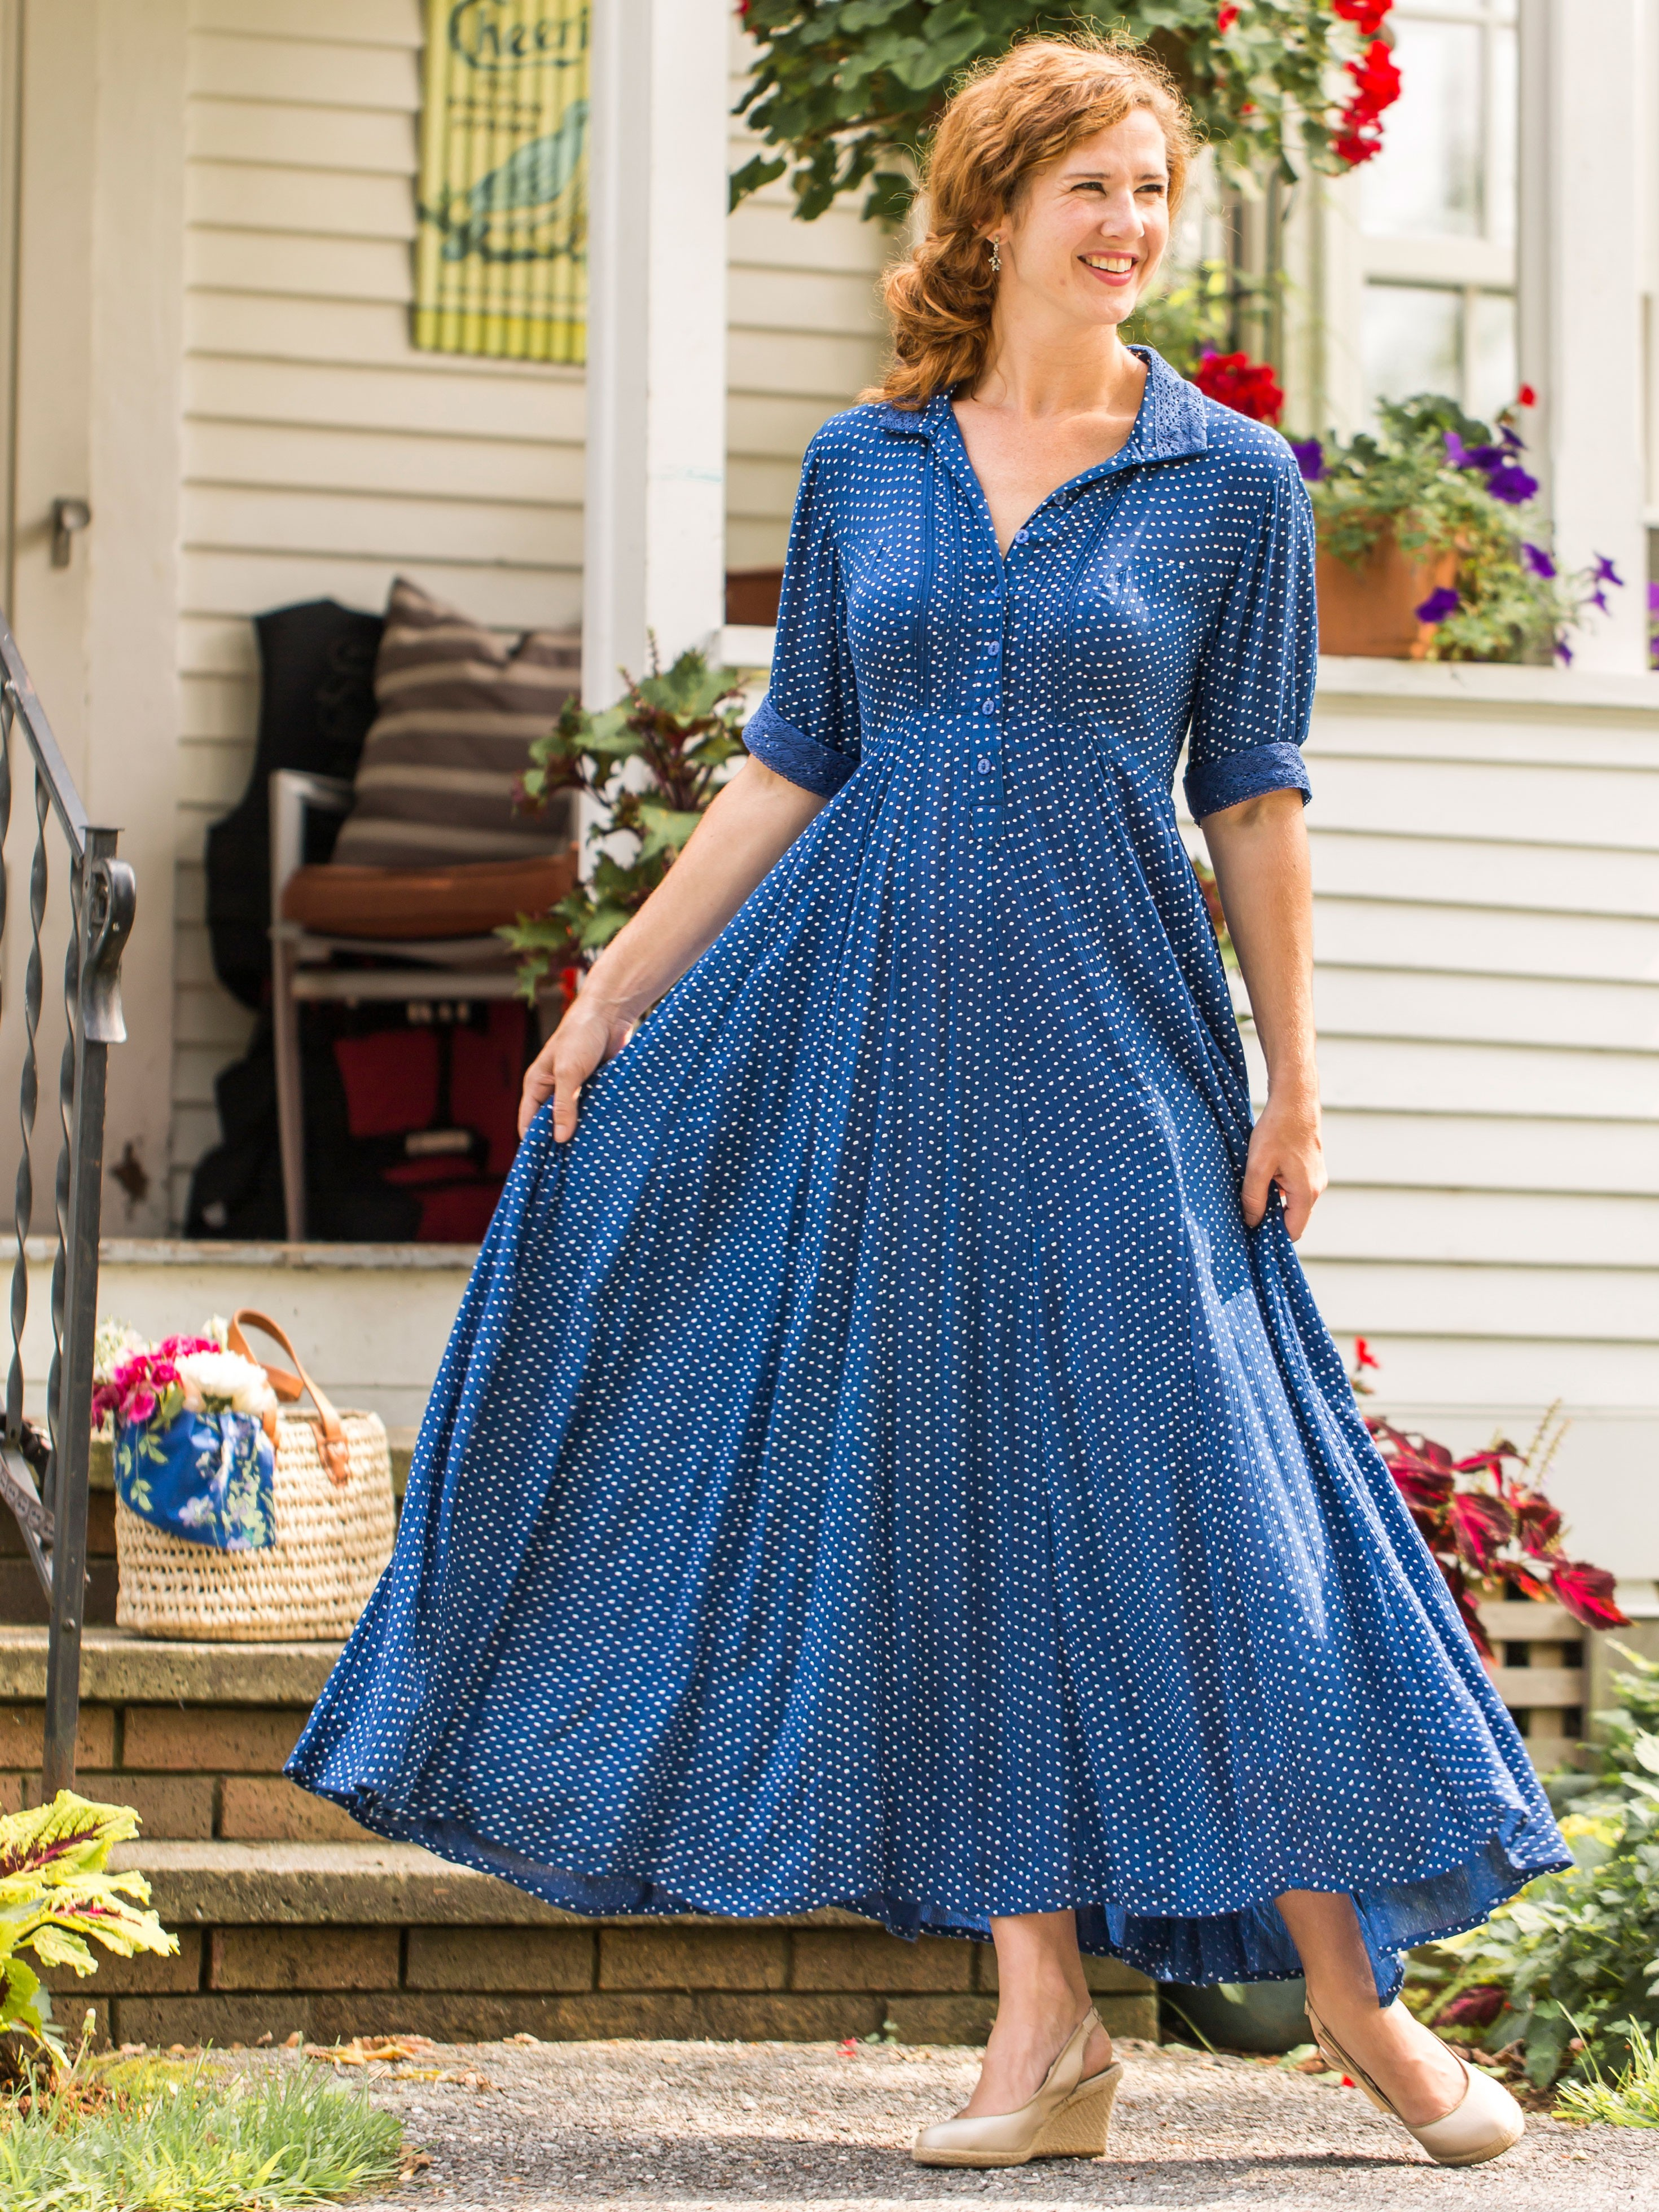 Romantic Rustic Dot Dress In Blue By April Cornell View Larger